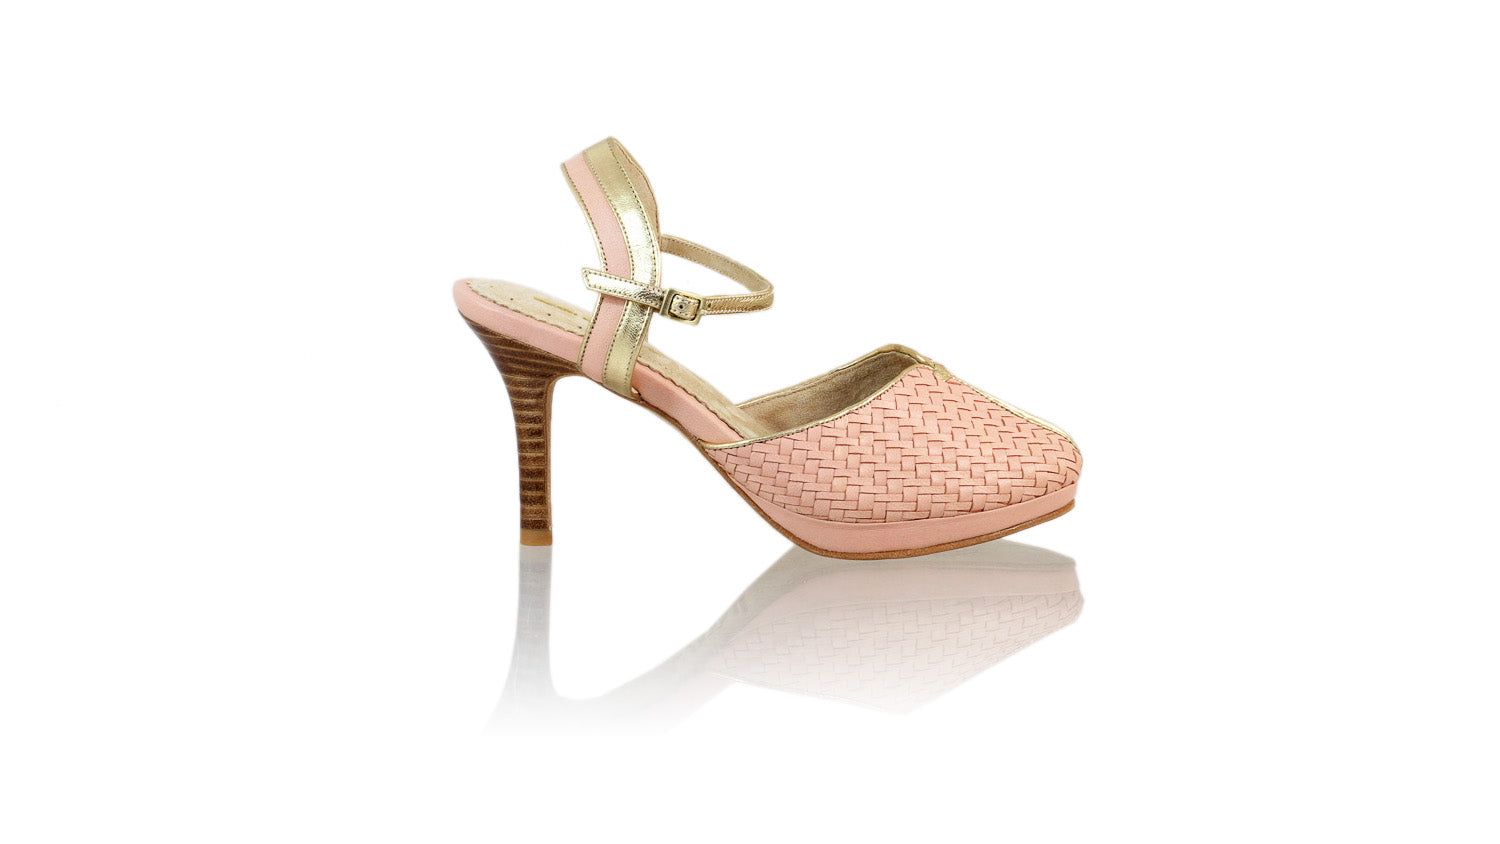 Leather-shoes-Agnes Woven 90mm SH PF - Soft Pink & Gold-pumps highheel-NILUH DJELANTIK-NILUH DJELANTIK